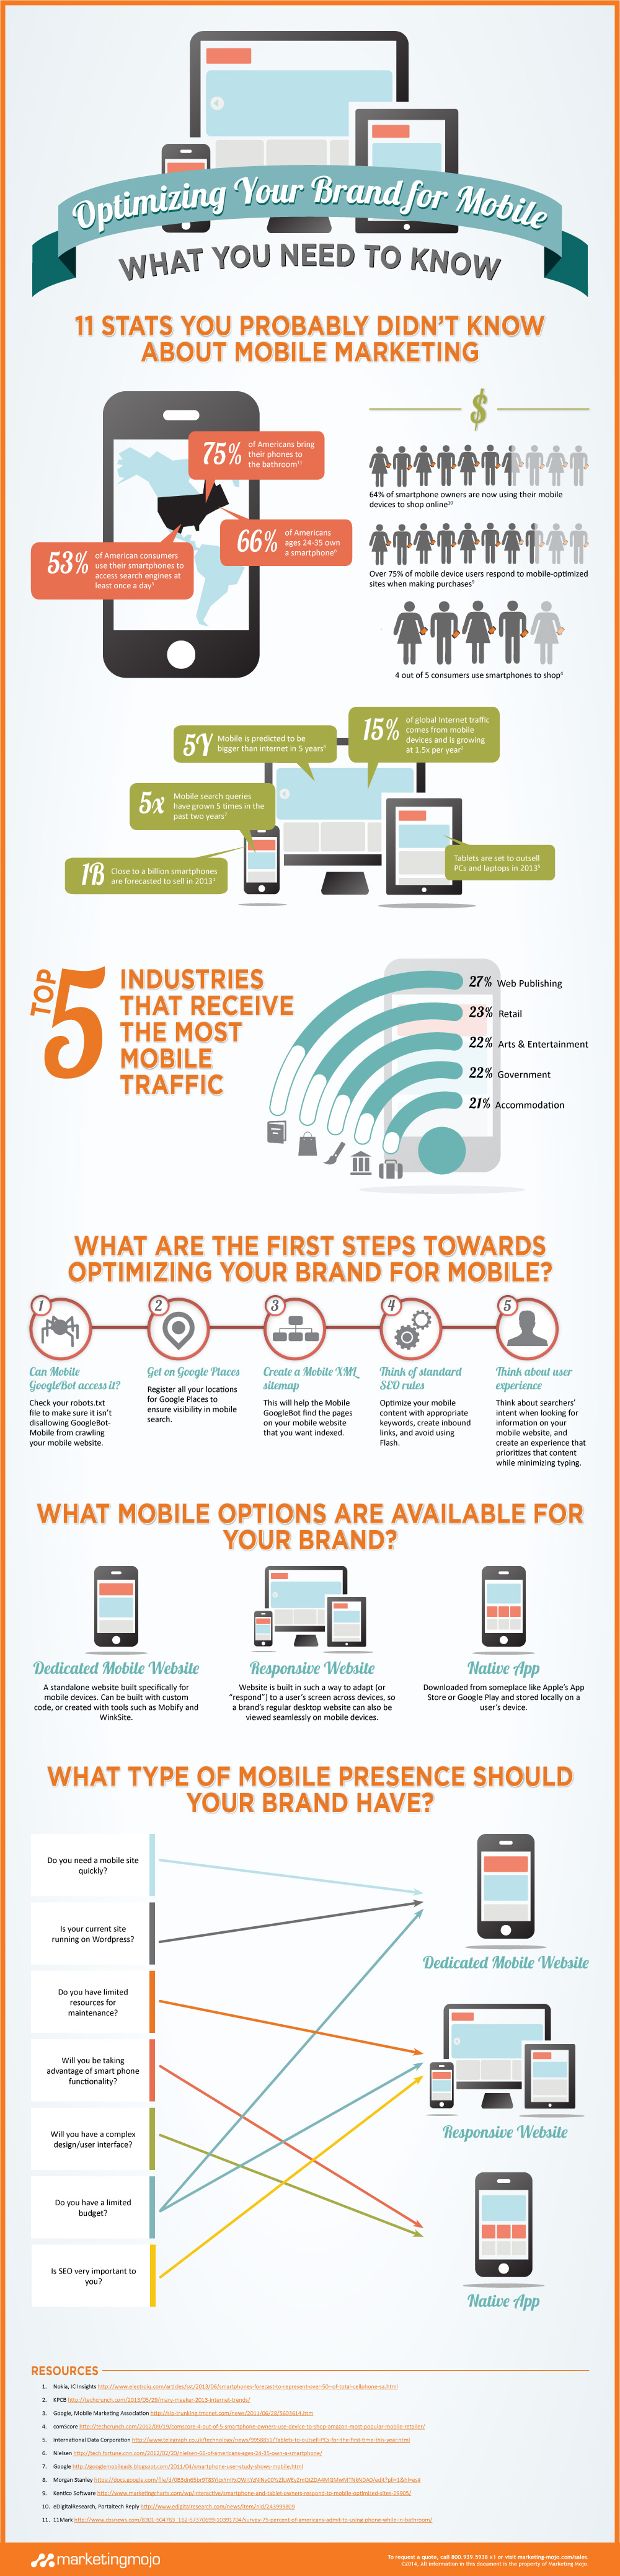 Marketing-Mojo_Optimizing_Your_Brand_for_Mobile_What_You_Need_to_Know